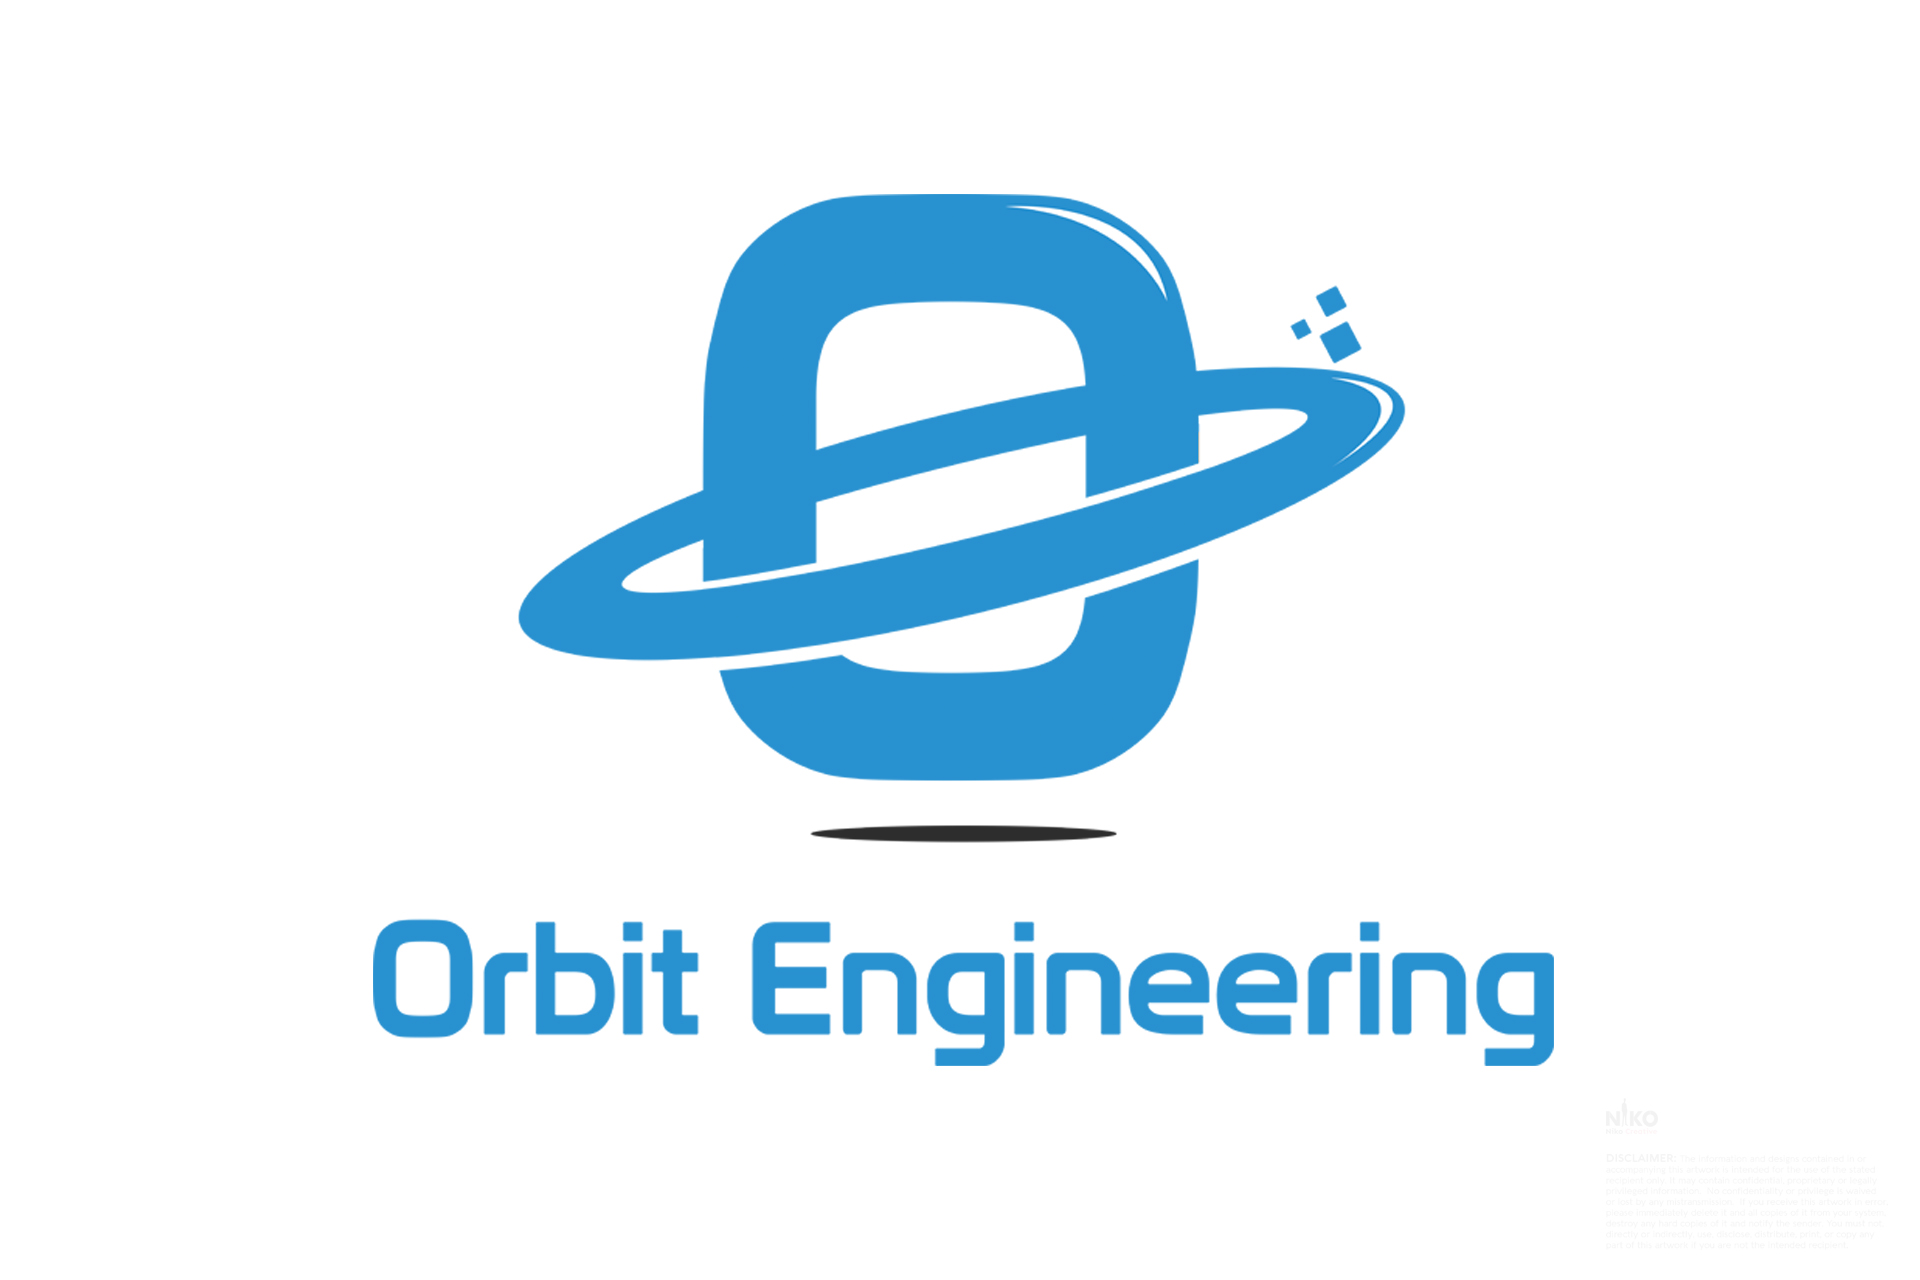 Day 5 Orbit Engineering